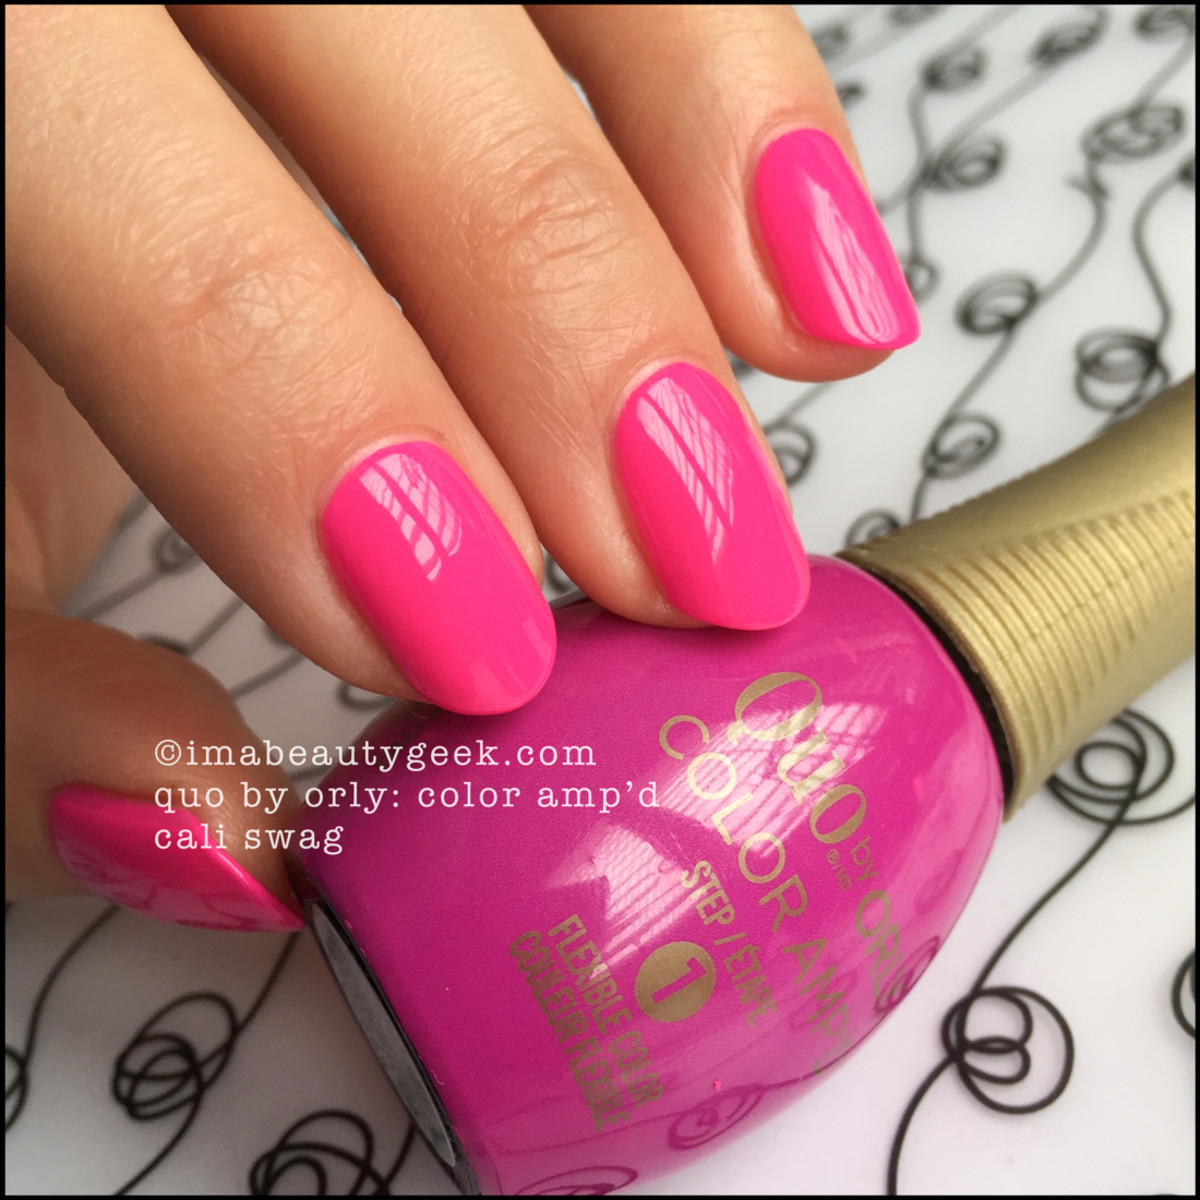 Quo by Orly Cali Swag_Quo Color Ampd Orly Epix Swatches